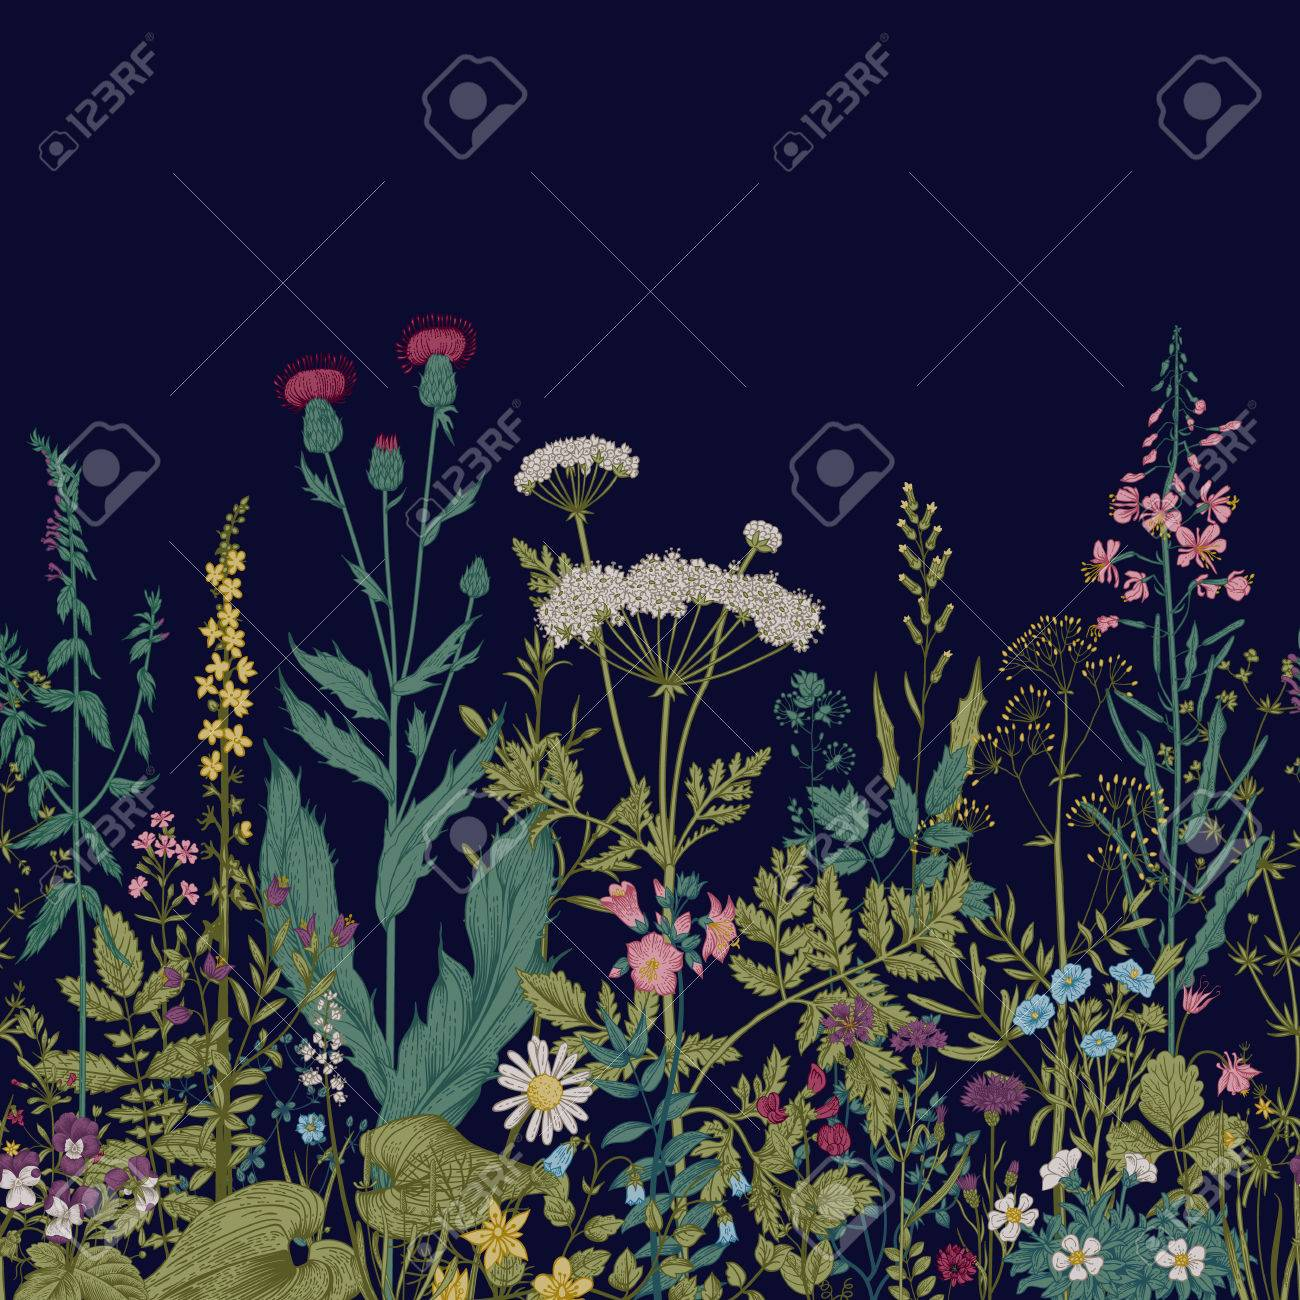 Vector seamless floral border. Herbs and wild flowers. Botanical Illustration engraving style. - 52411619